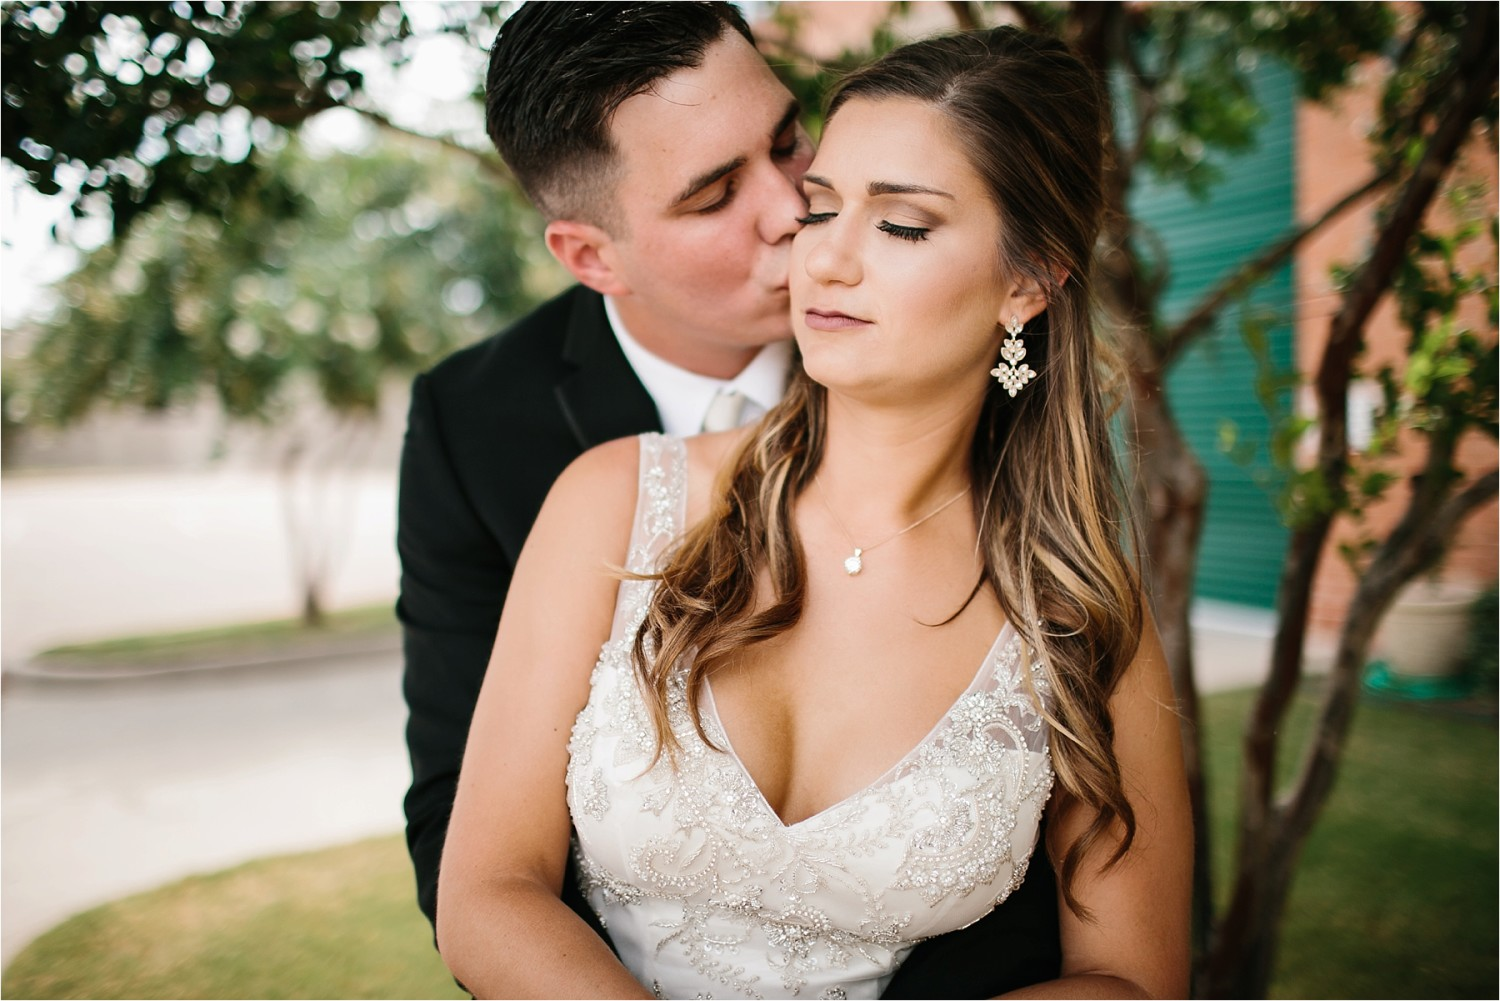 Holly + Jordan __ a black, gold, and greenery organic wedding at The Phoenix Ballroom in Waco, TX by North Texas Wedding Photographer Rachel Meagan Photography __ 39